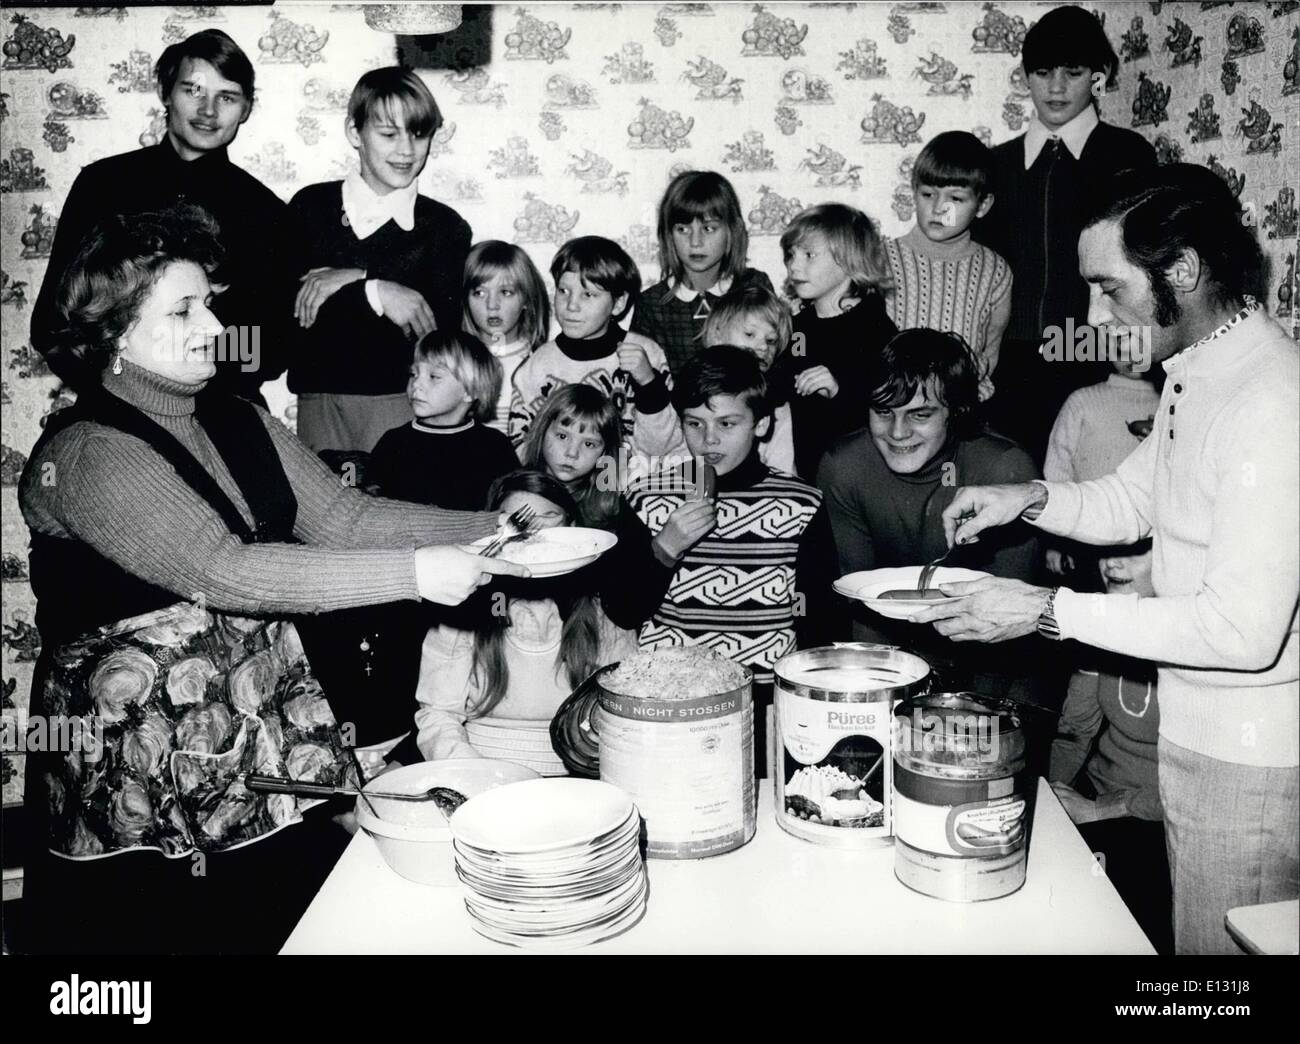 Feb. 26, 2012 - The Koch family is probably the largest one in West Germany. Large quantities are need, when the Stock Photo